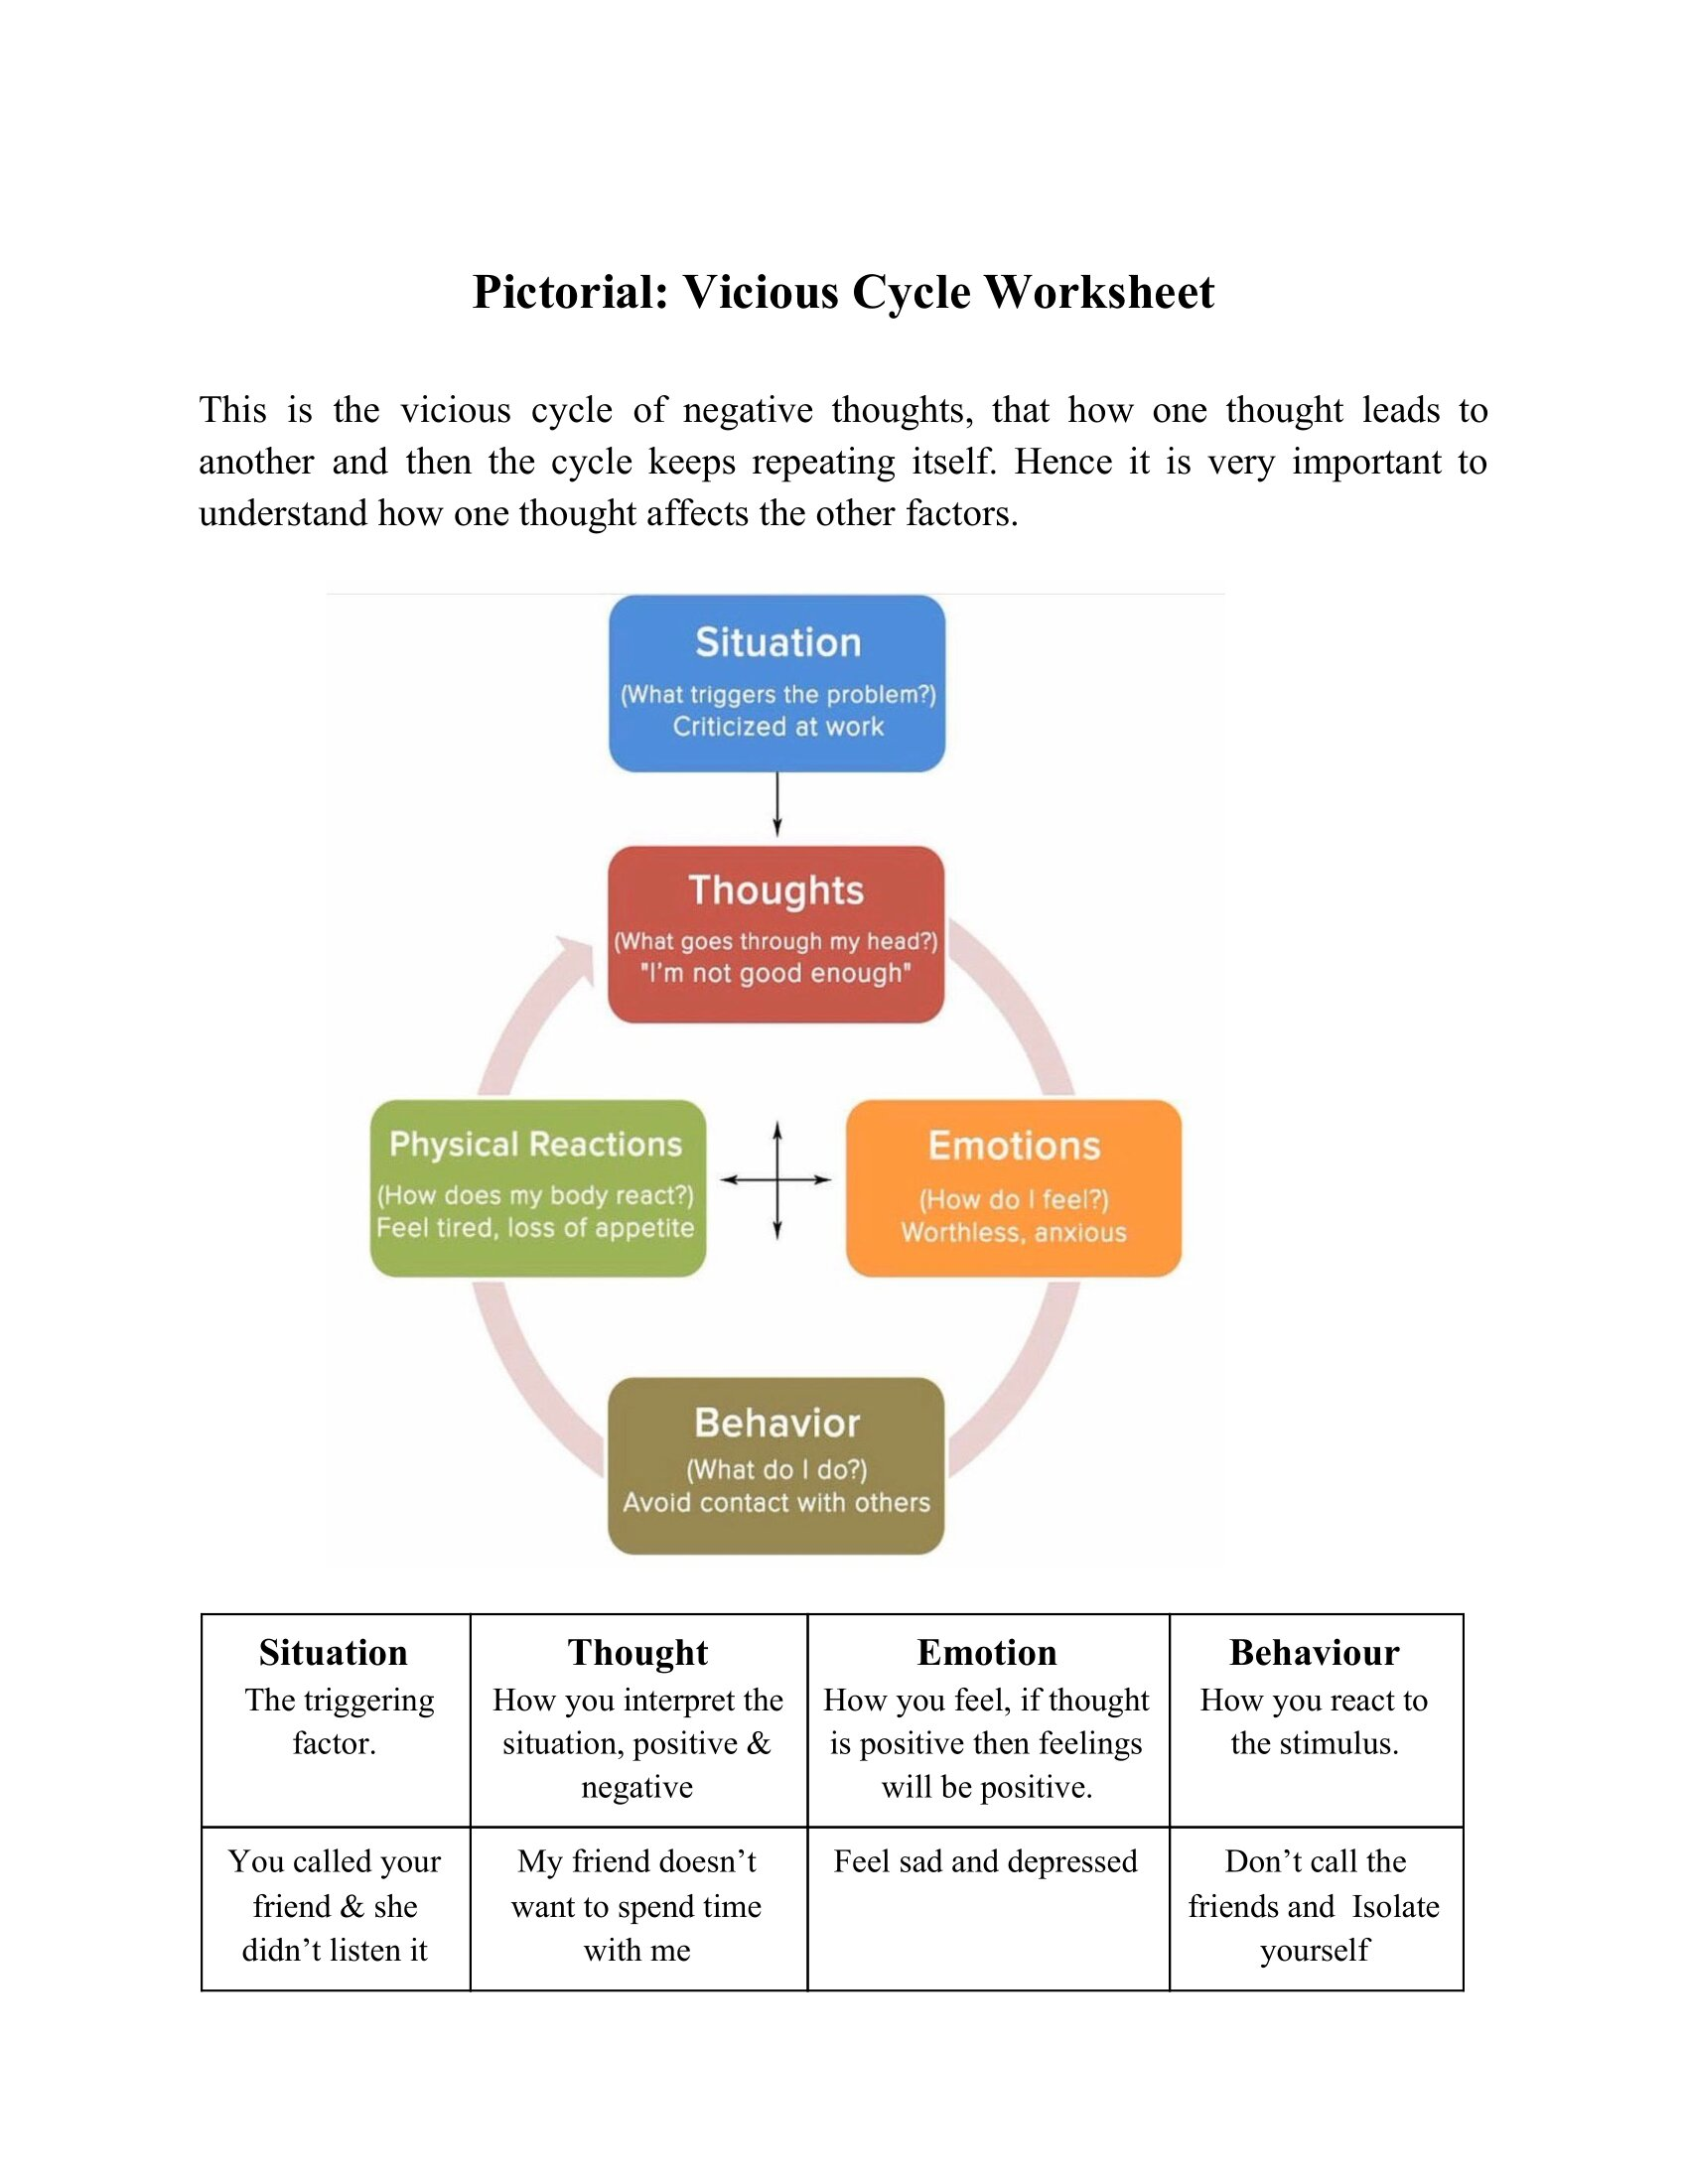 Pictorial Vicious Cycle Worksheet